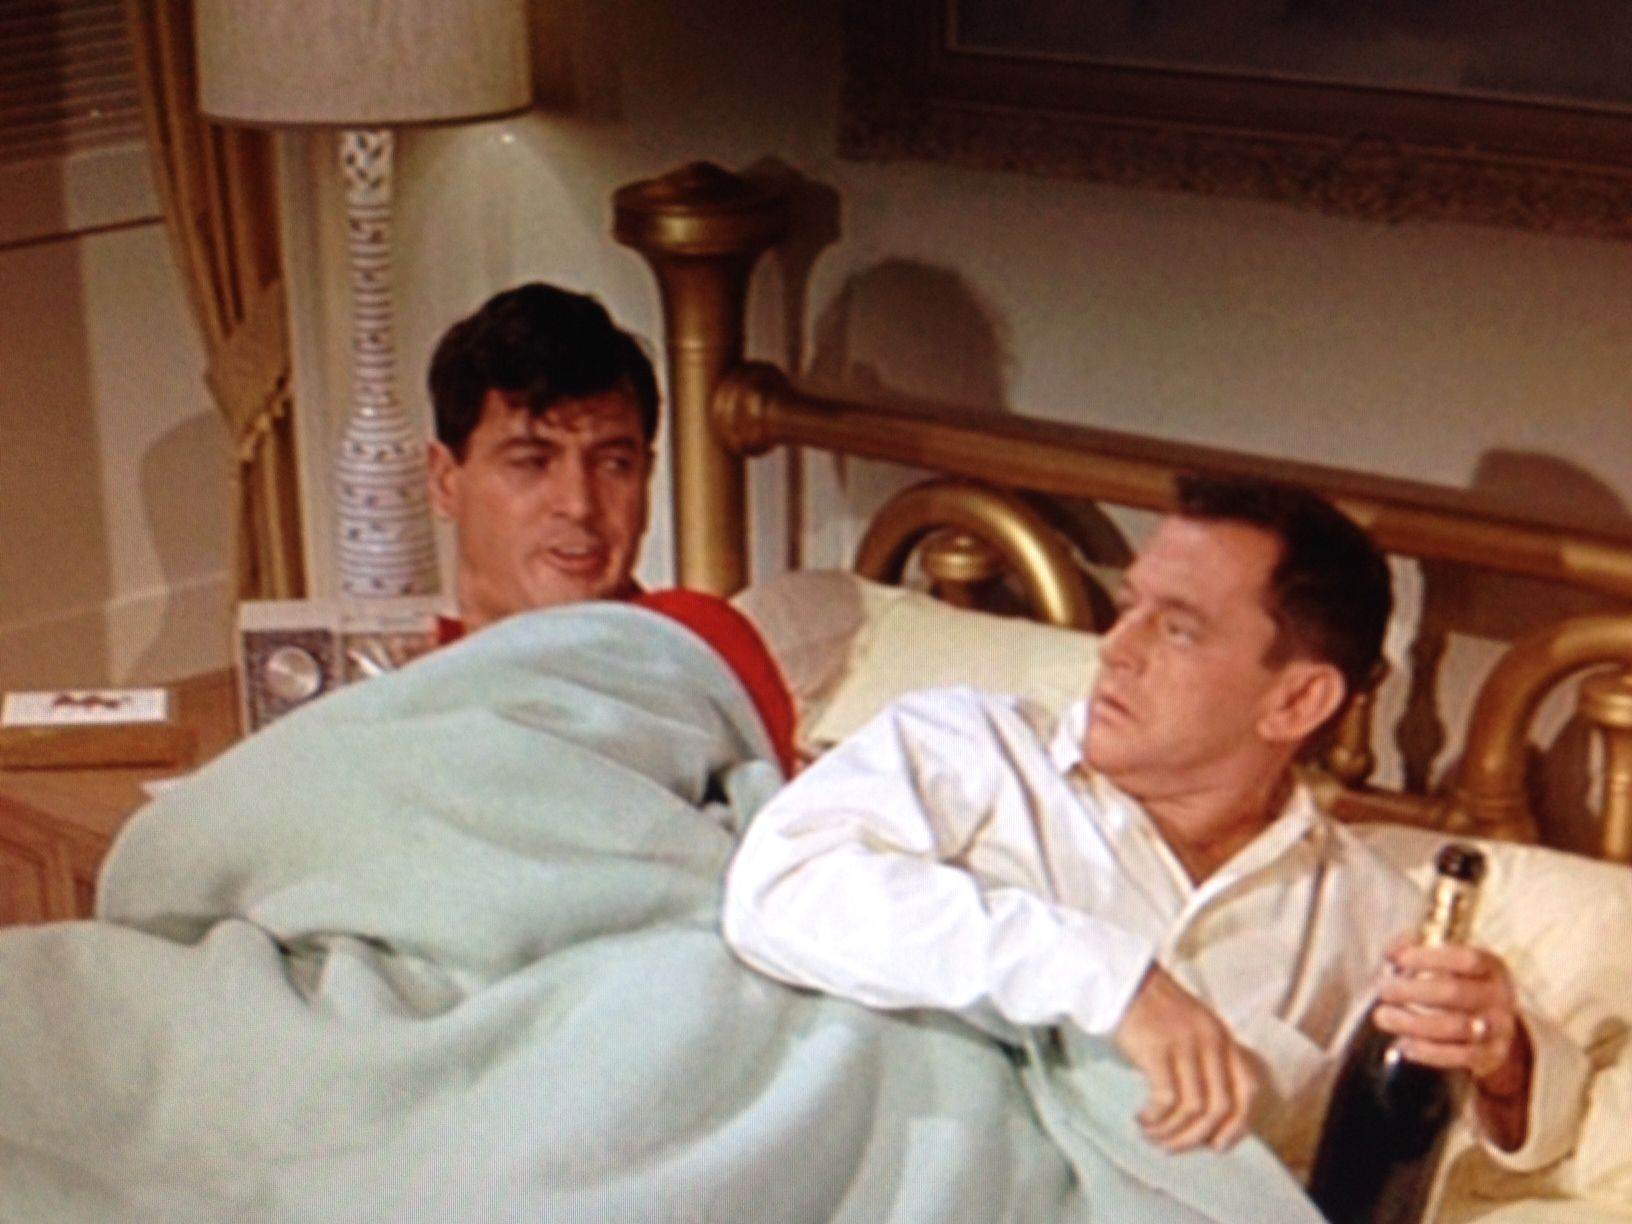 What If Doris Day Was The Best Friend And Tony Randall Was The Love Interest?